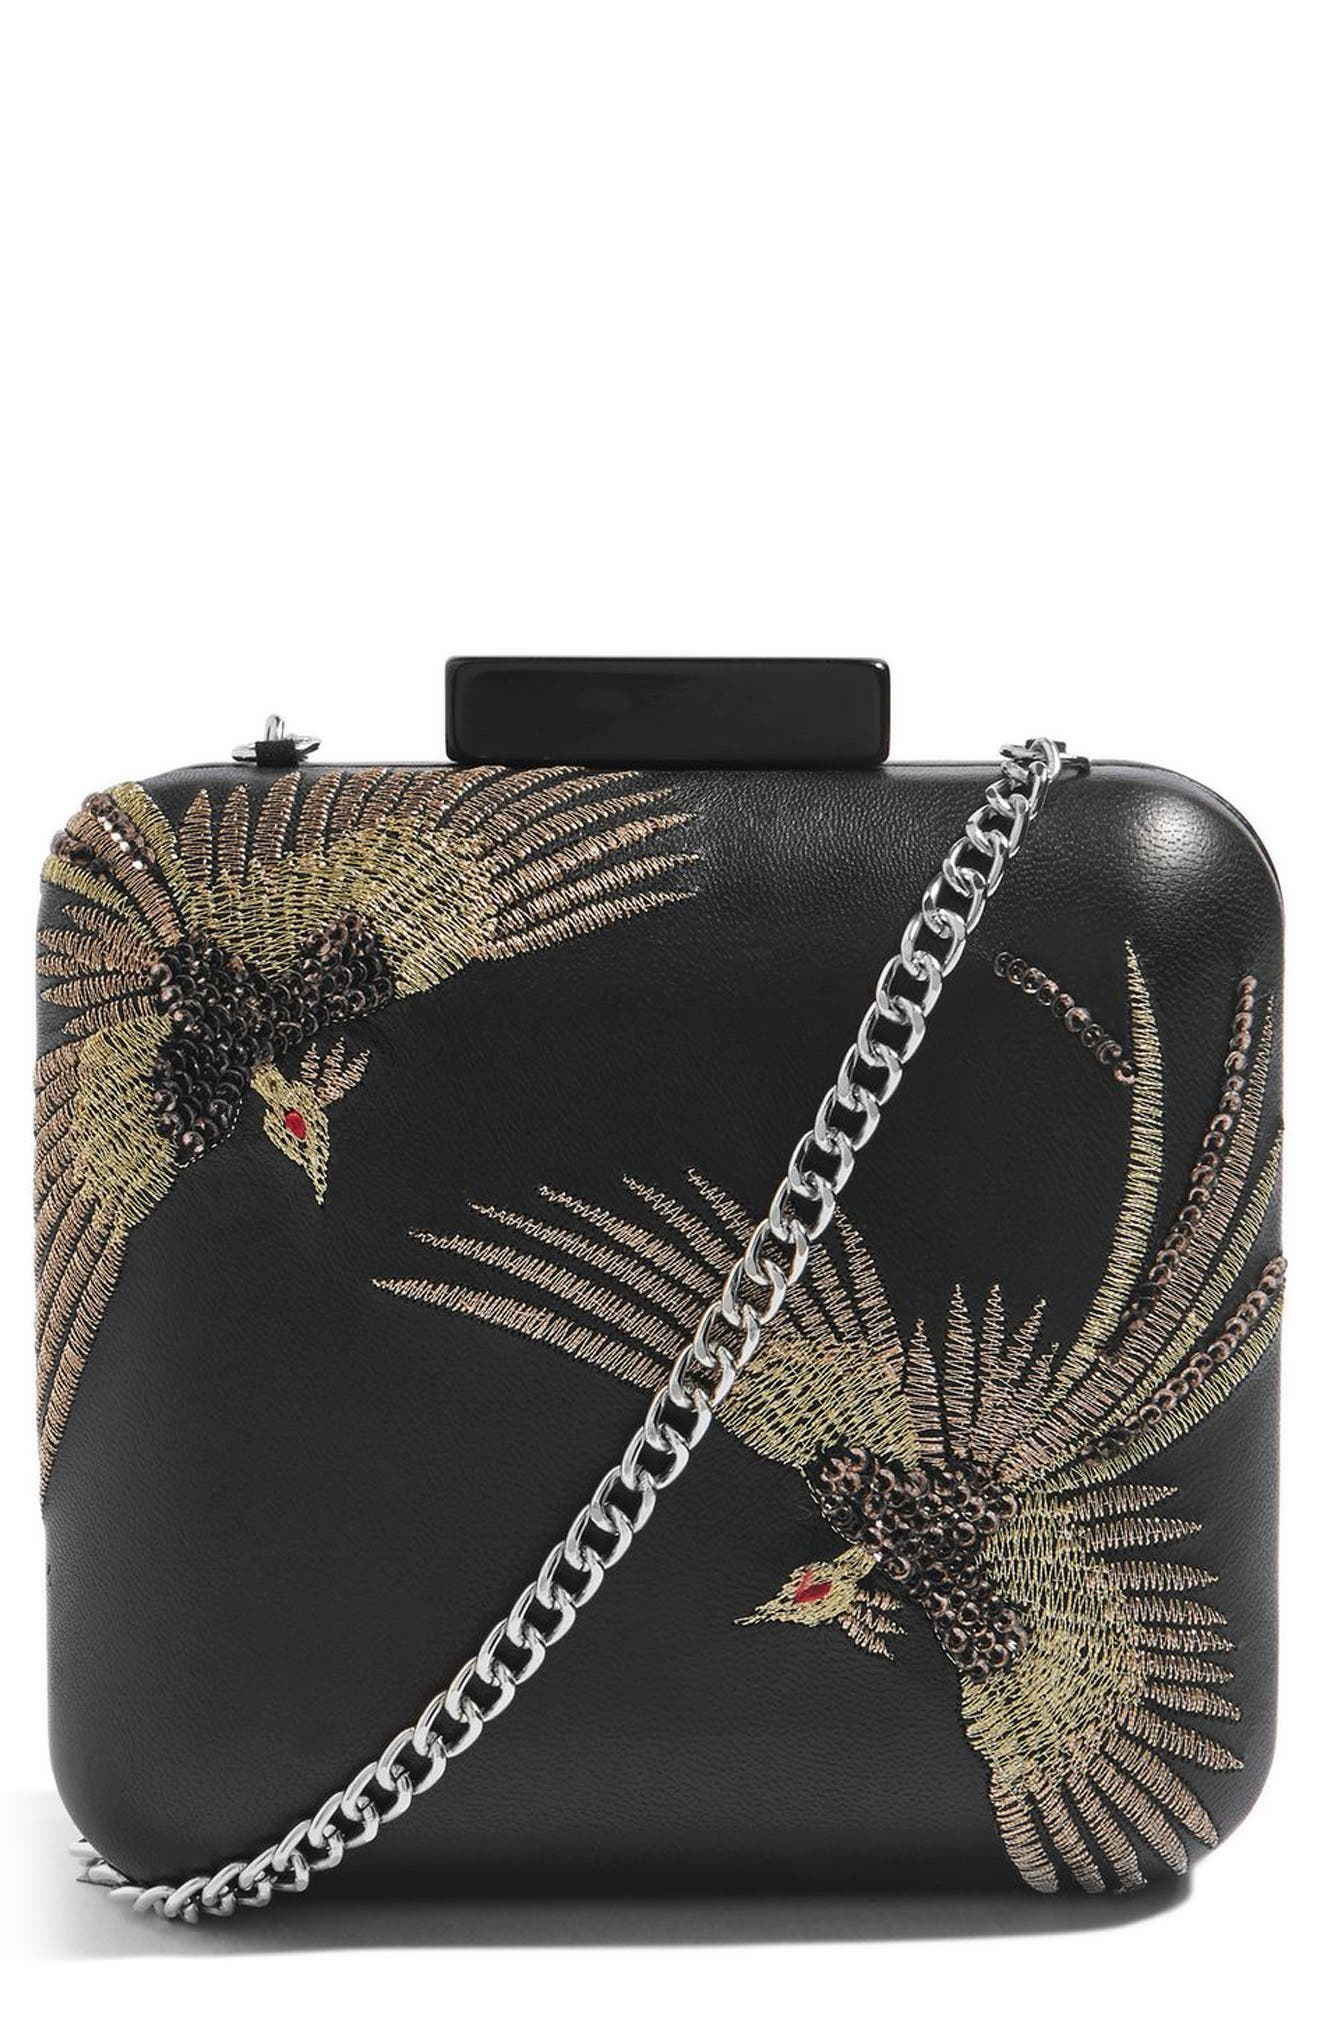 Embroidered Bird Boxy Leather Crossbody Bag,                             Main thumbnail 1, color,                             Black Multi